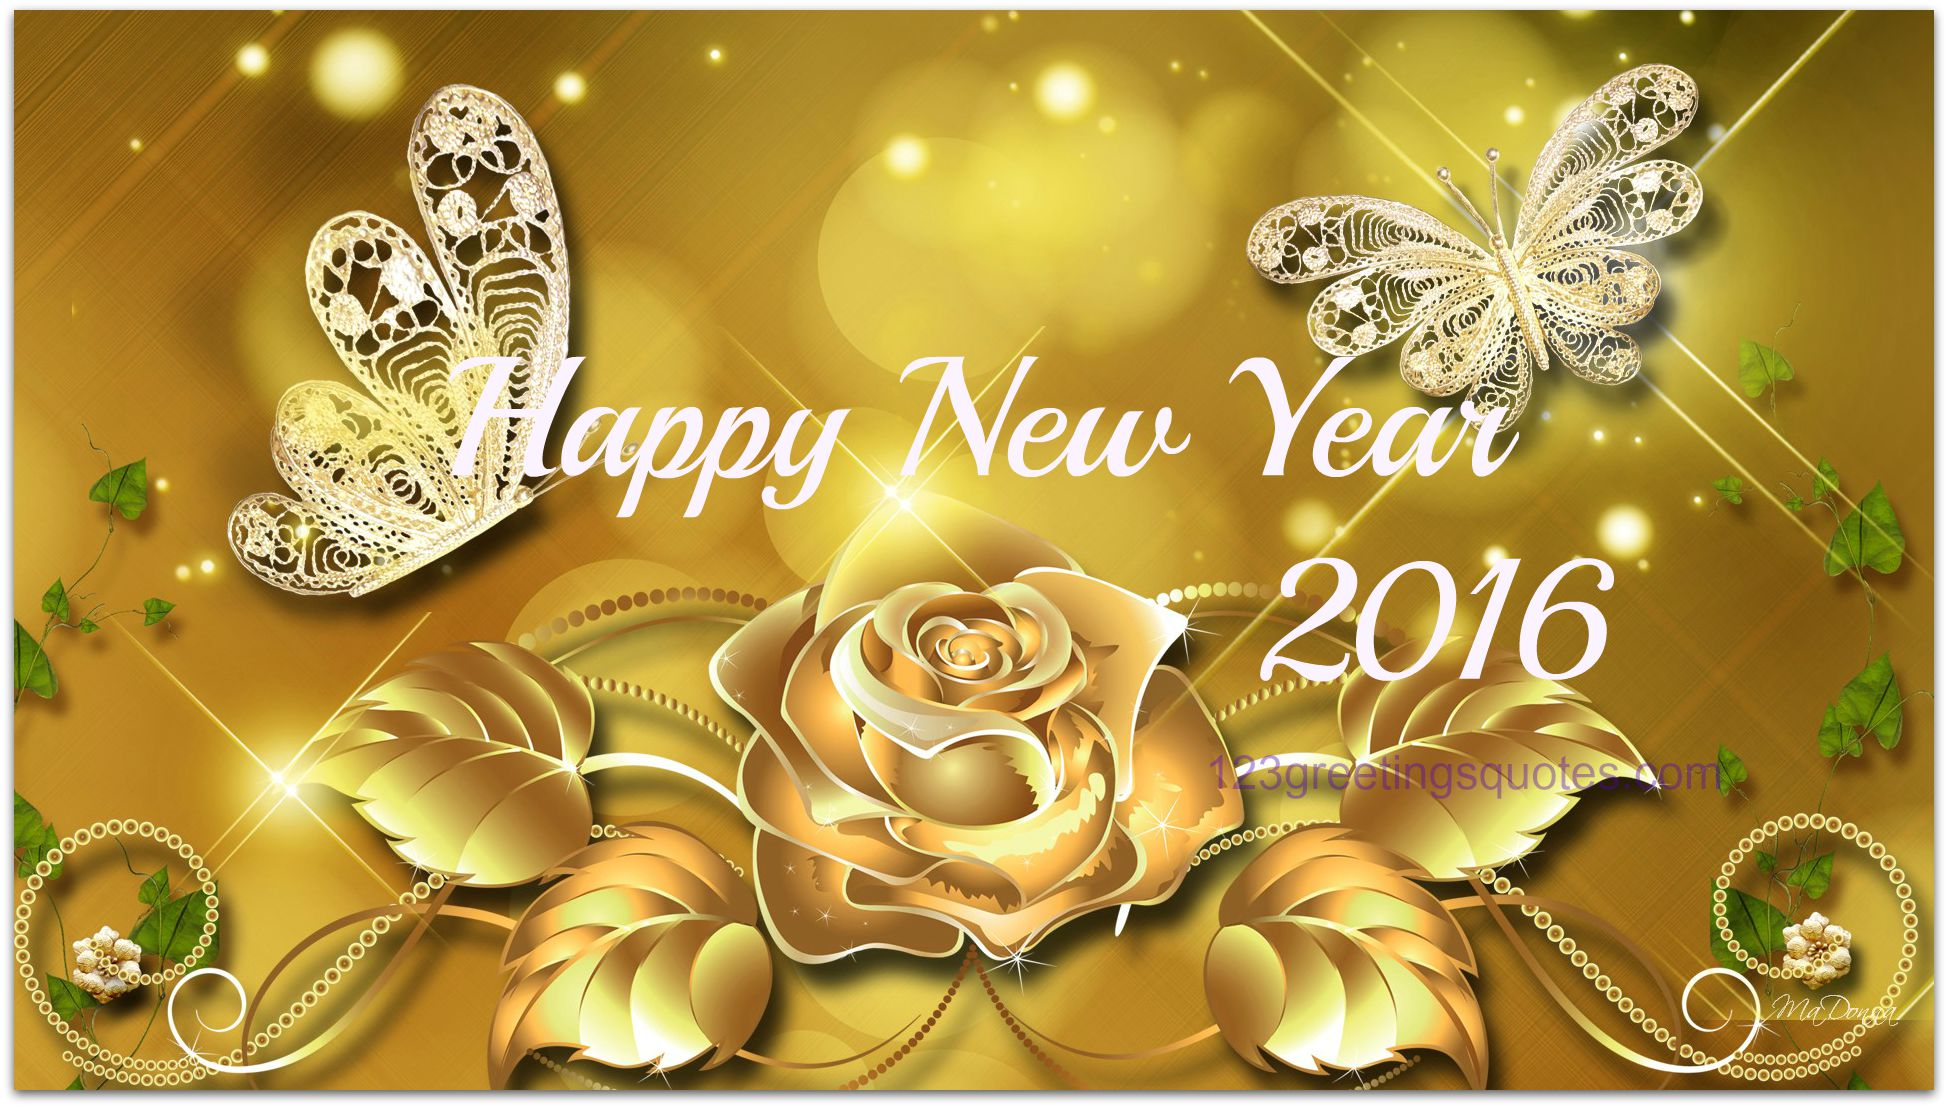 Happy new year 2016 first wishes